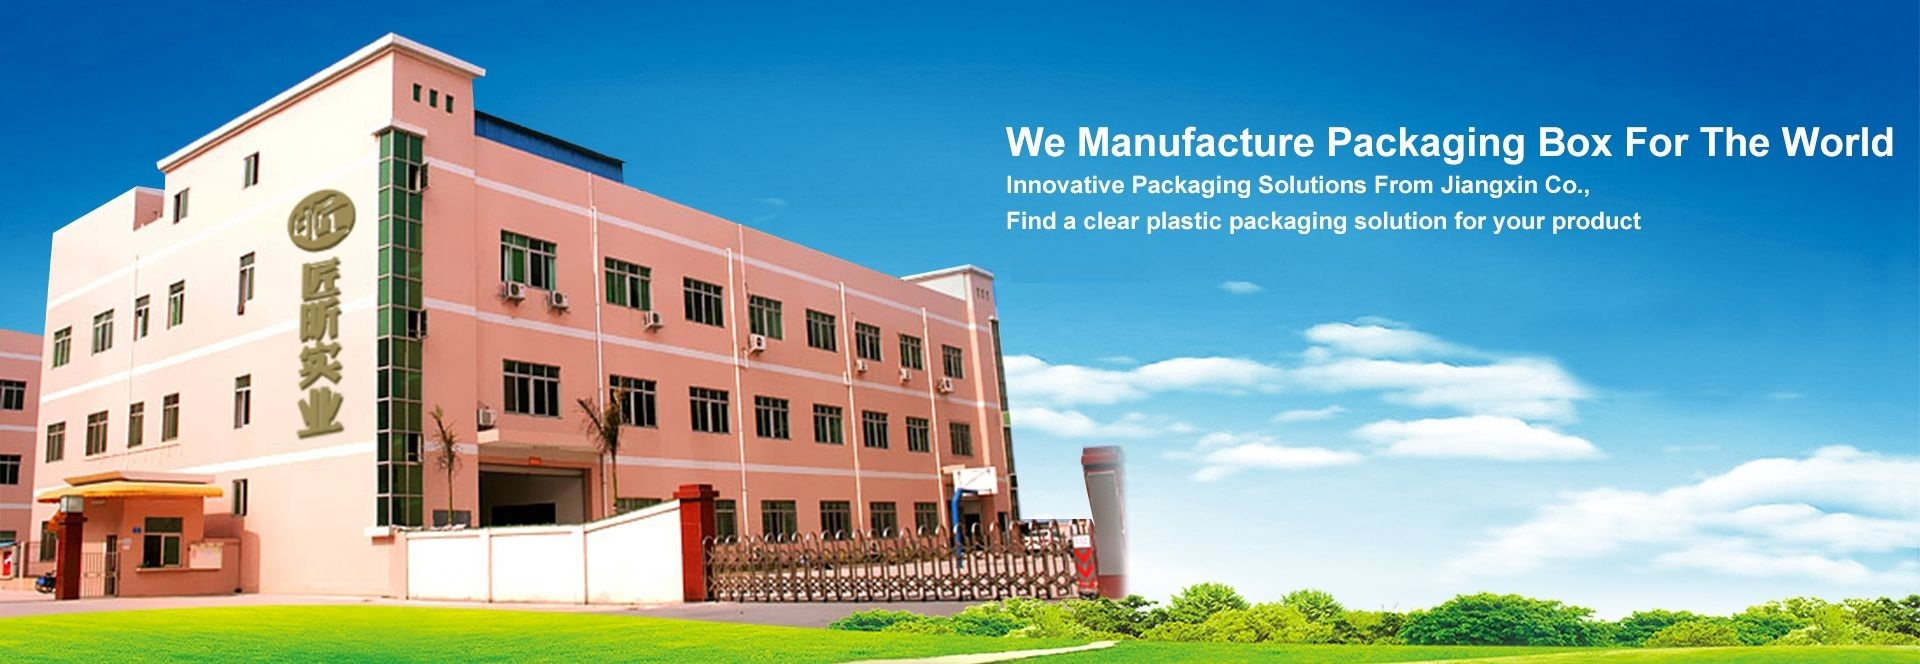 Jiangxin Industrial Co. Ltd. (@xmjxpb) Cover Image